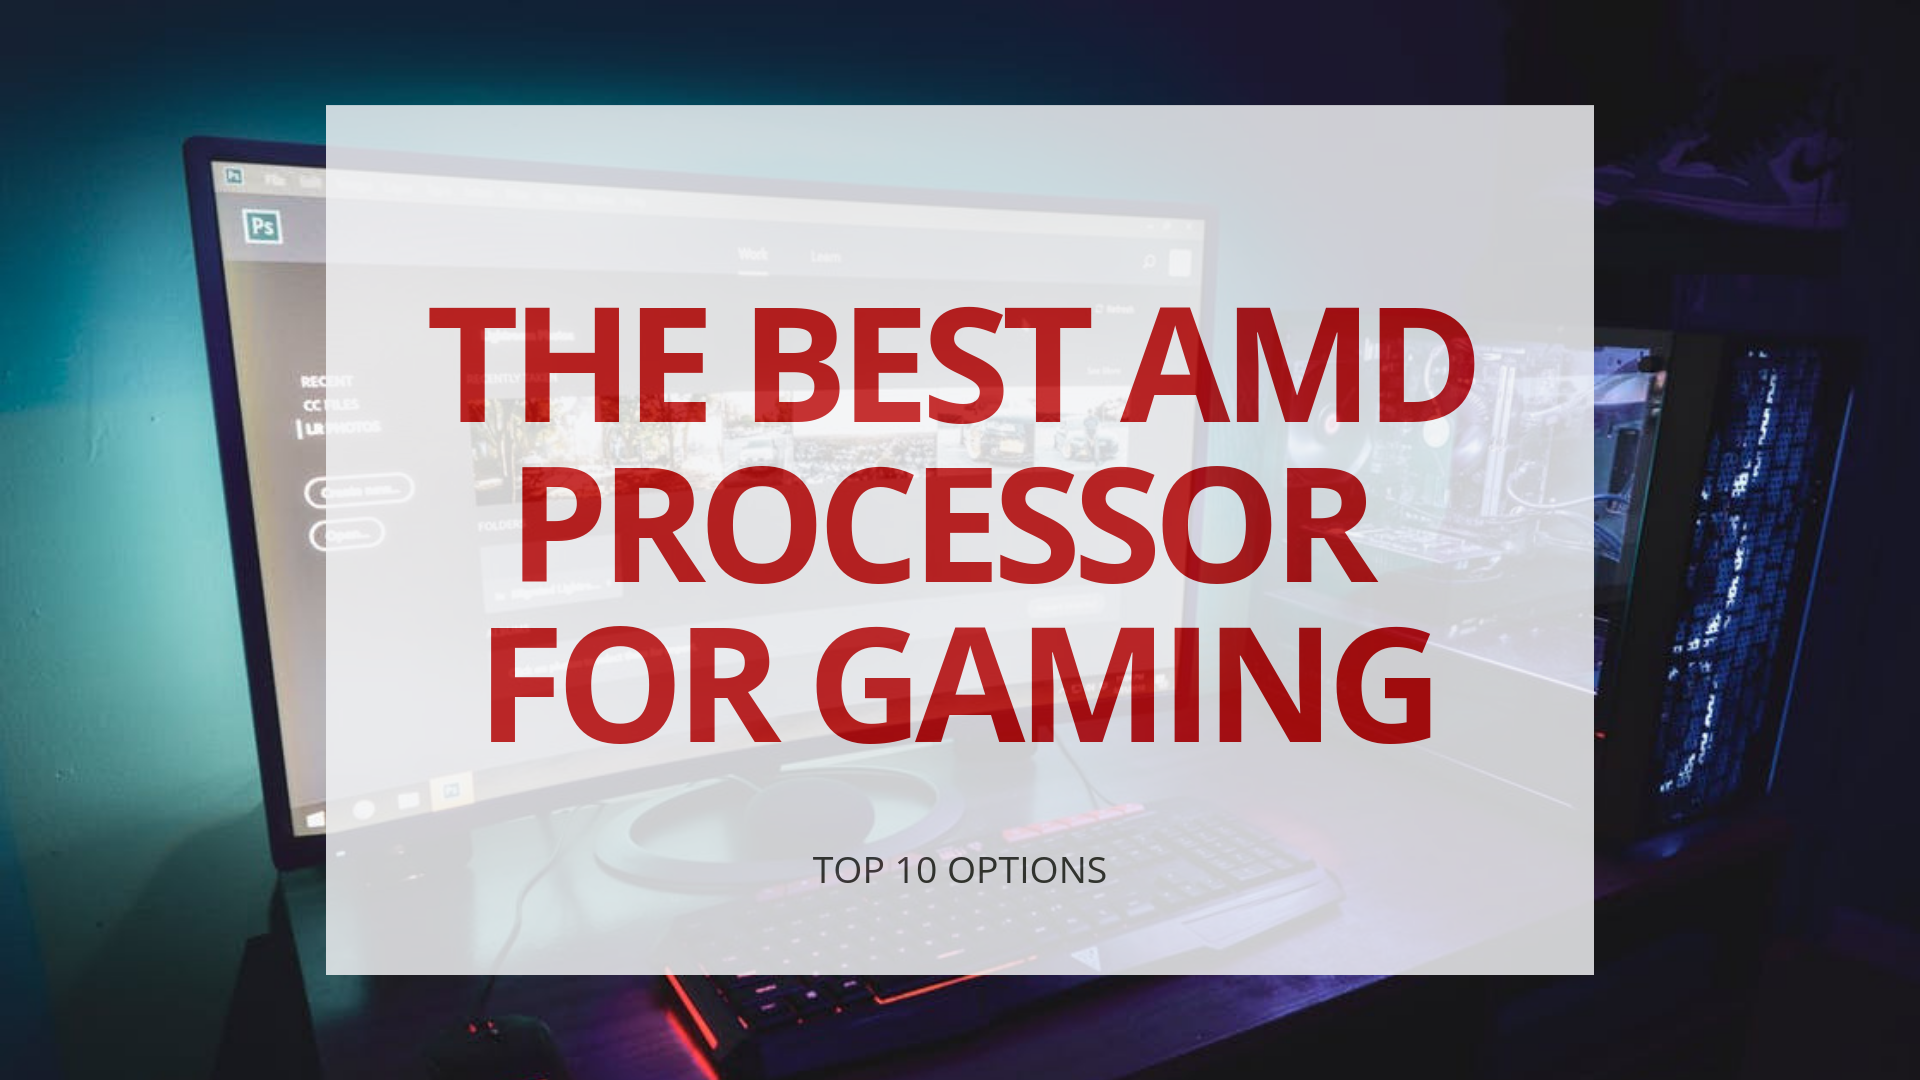 The Best AMD Processor for Gaming: Top 10 Options